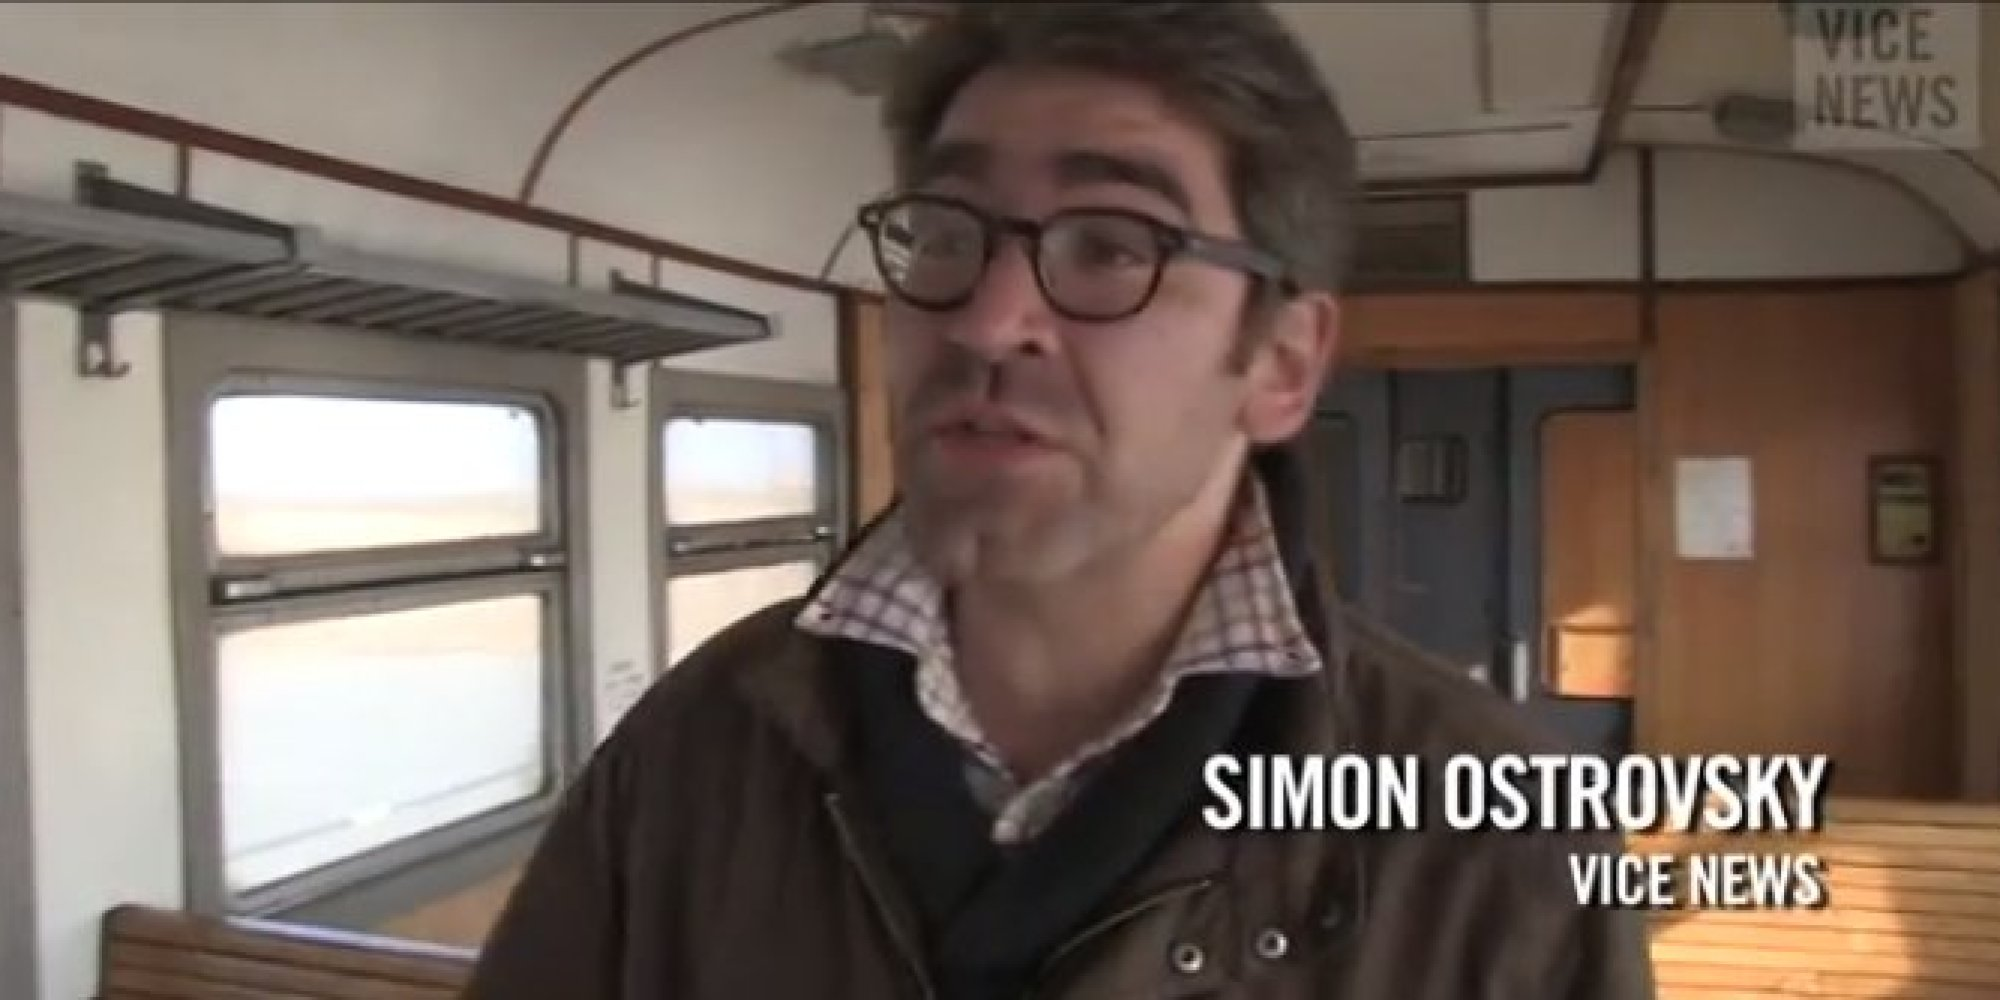 Vice Reporter Simon Ostrovsky Being Held In Eastern Ukraine | HuffPost